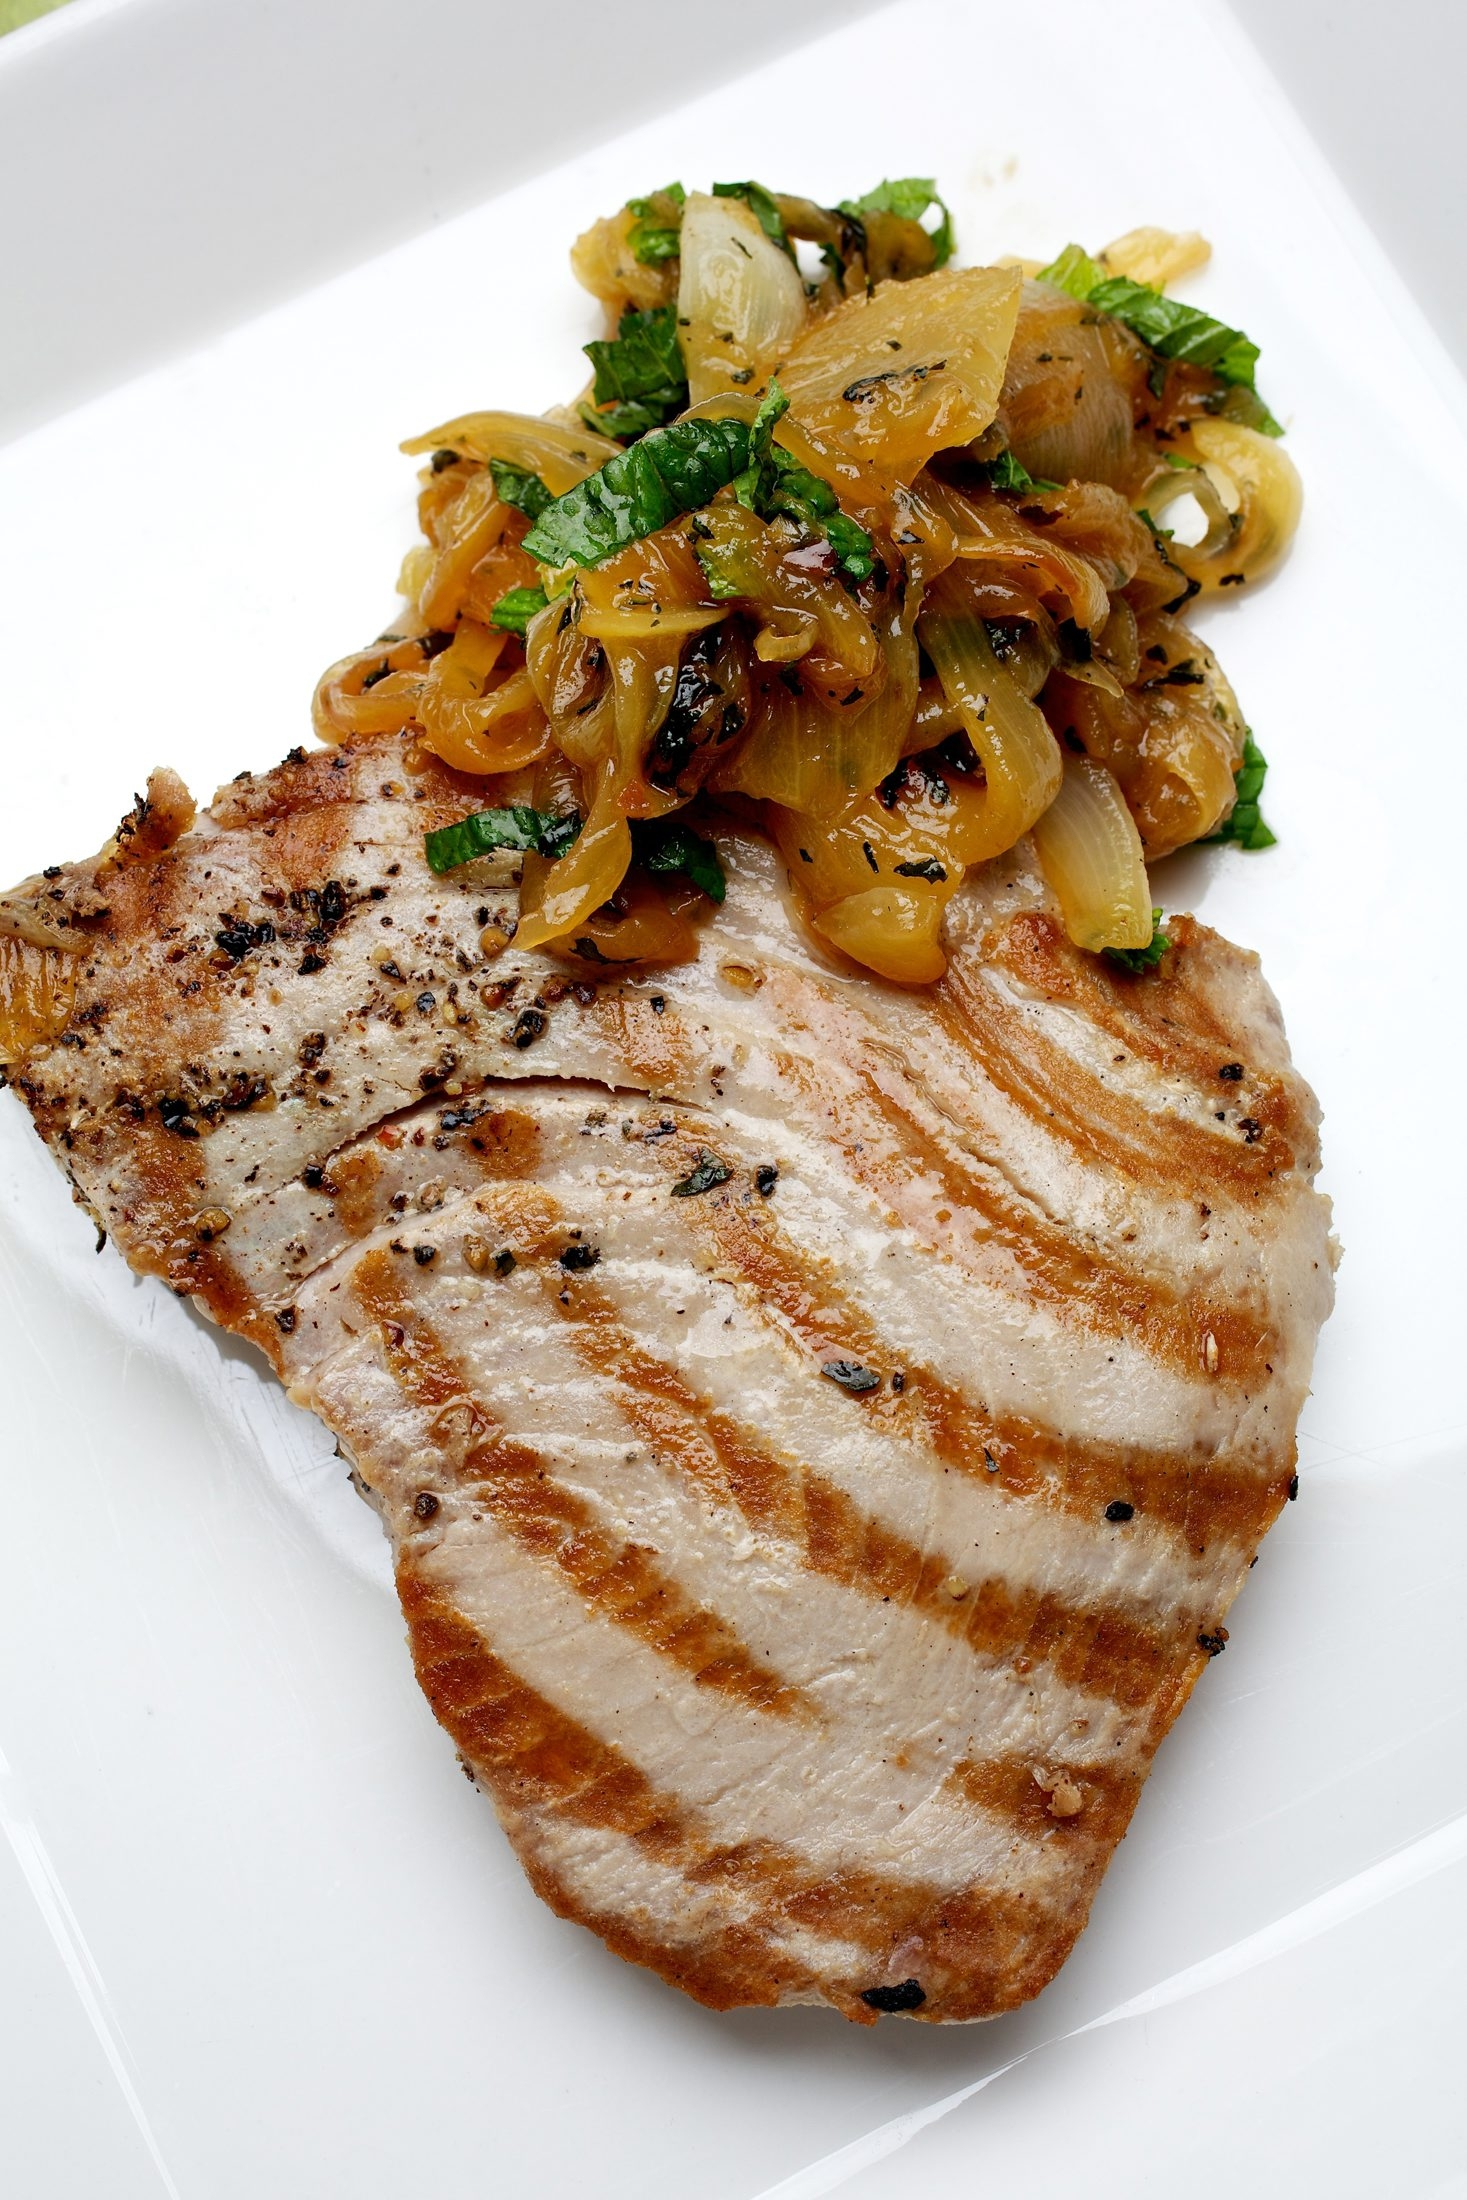 Cinnamon and mint give grilled tuna an unexpected twist.